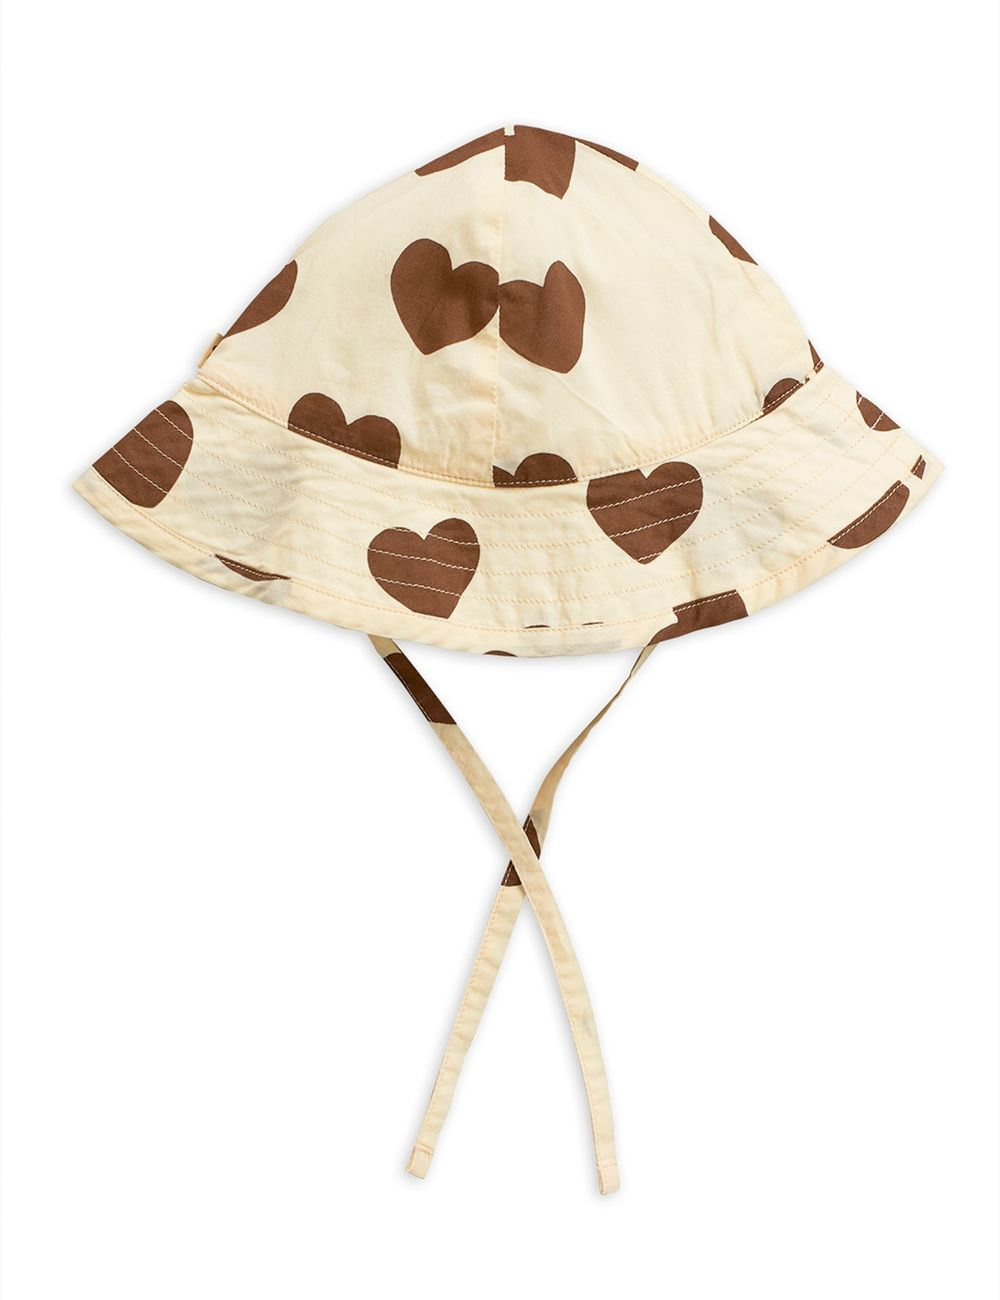 MINI RODINI HEARTS SUN HAT, BEIGE